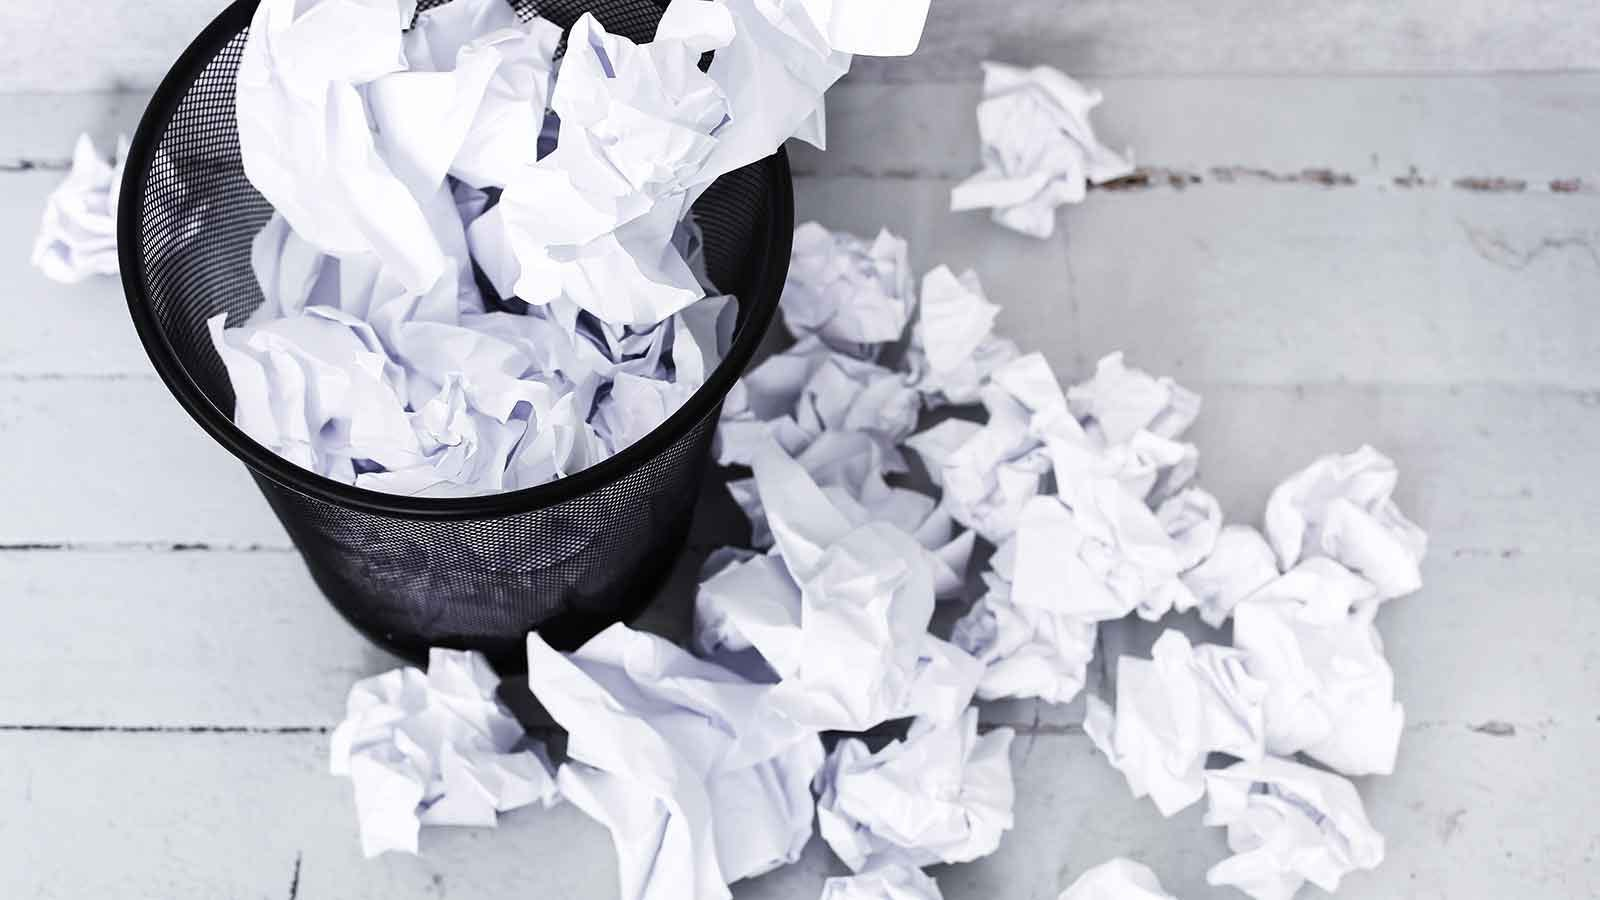 Trash can full of crumpled and scattered paper.